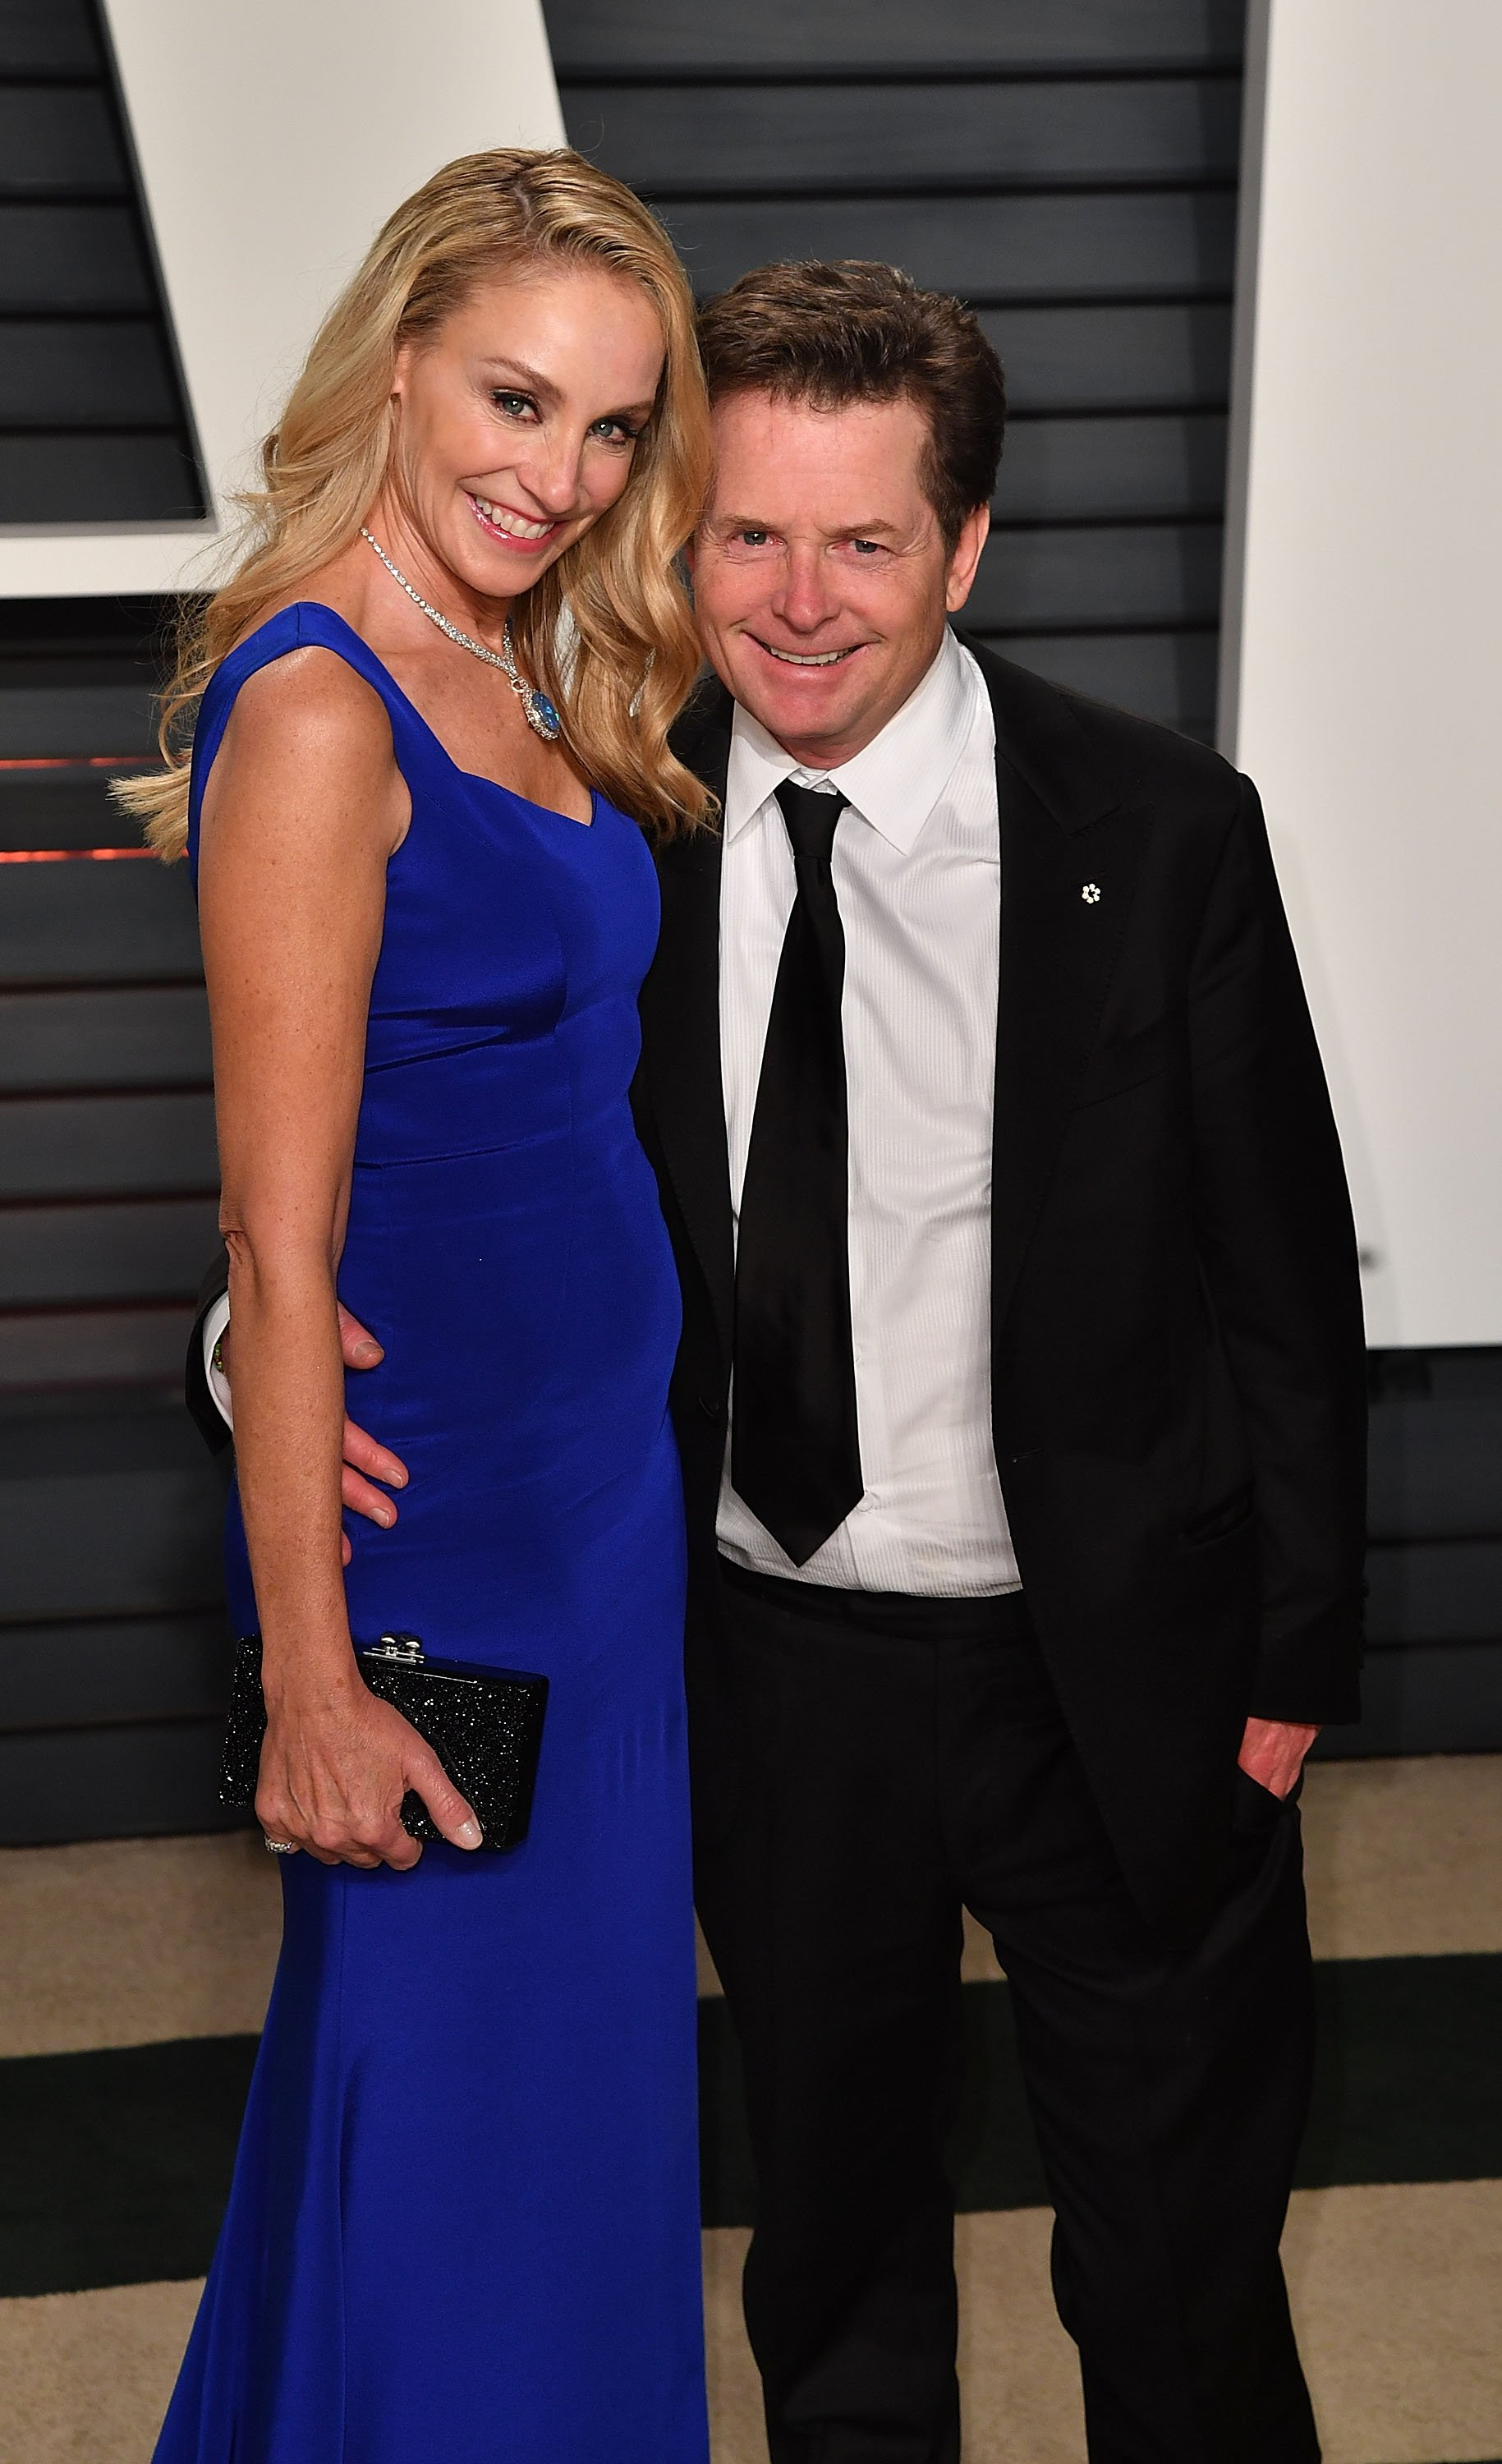 Actor Michael J. Fox and wife Tracy Pollan arrive at the 2017 Vanity Fair Oscar Party Hosted By Graydon Carter at Wallis Annenberg Center for the Performing Arts on February 26, 2017 in Beverly Hills.   Source: Getty Images